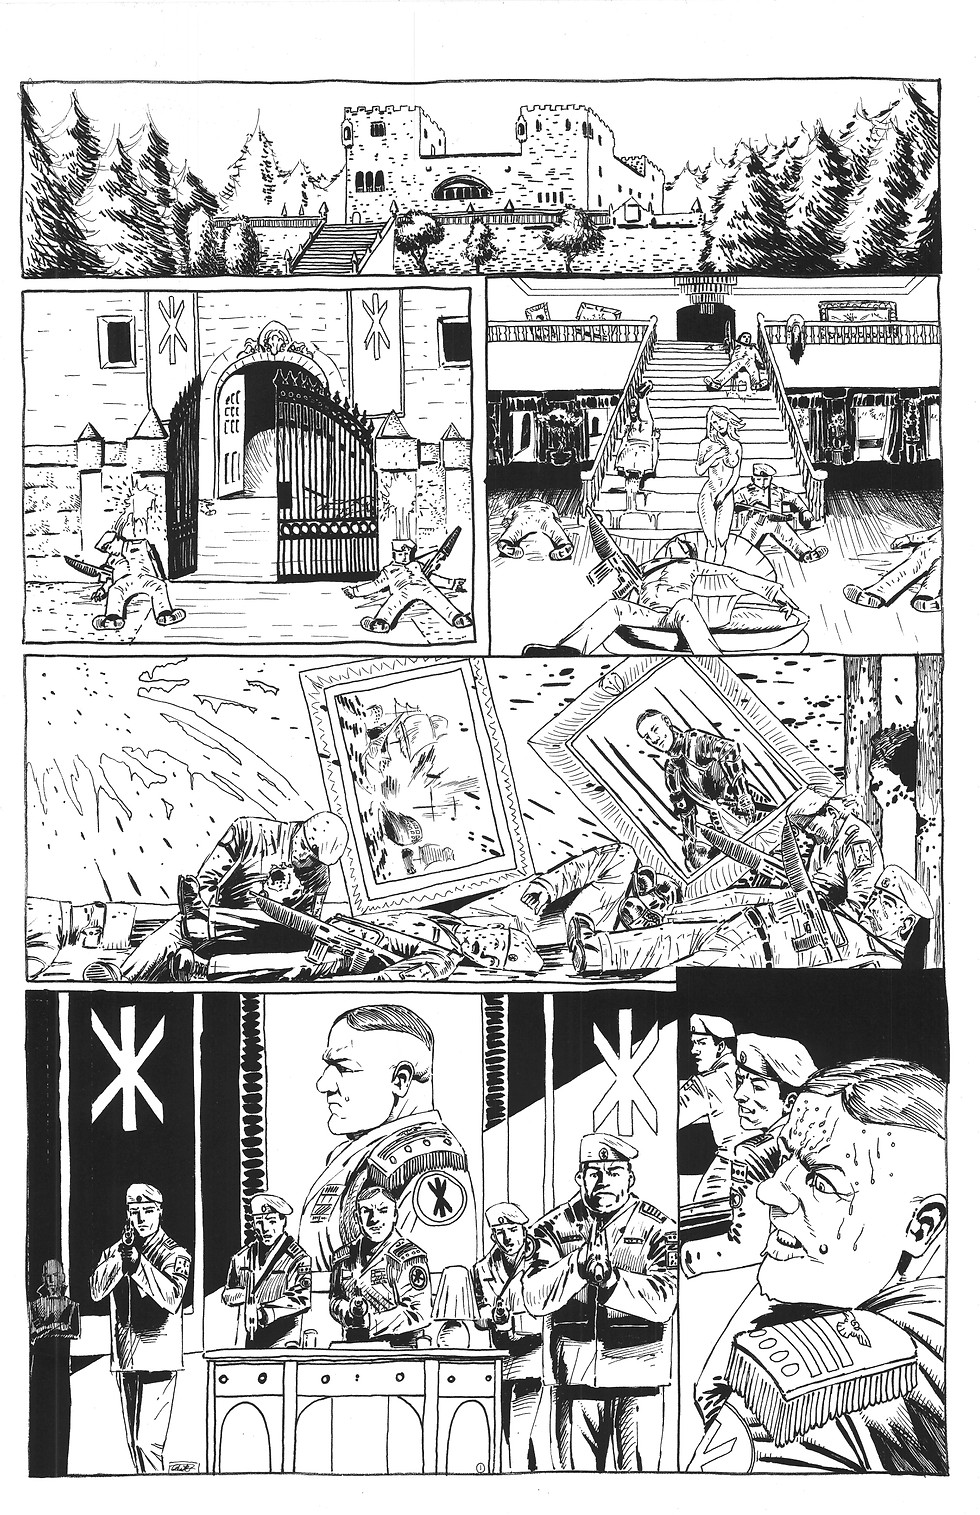 Live Wire Issue 1 (pages 1-14).jpg